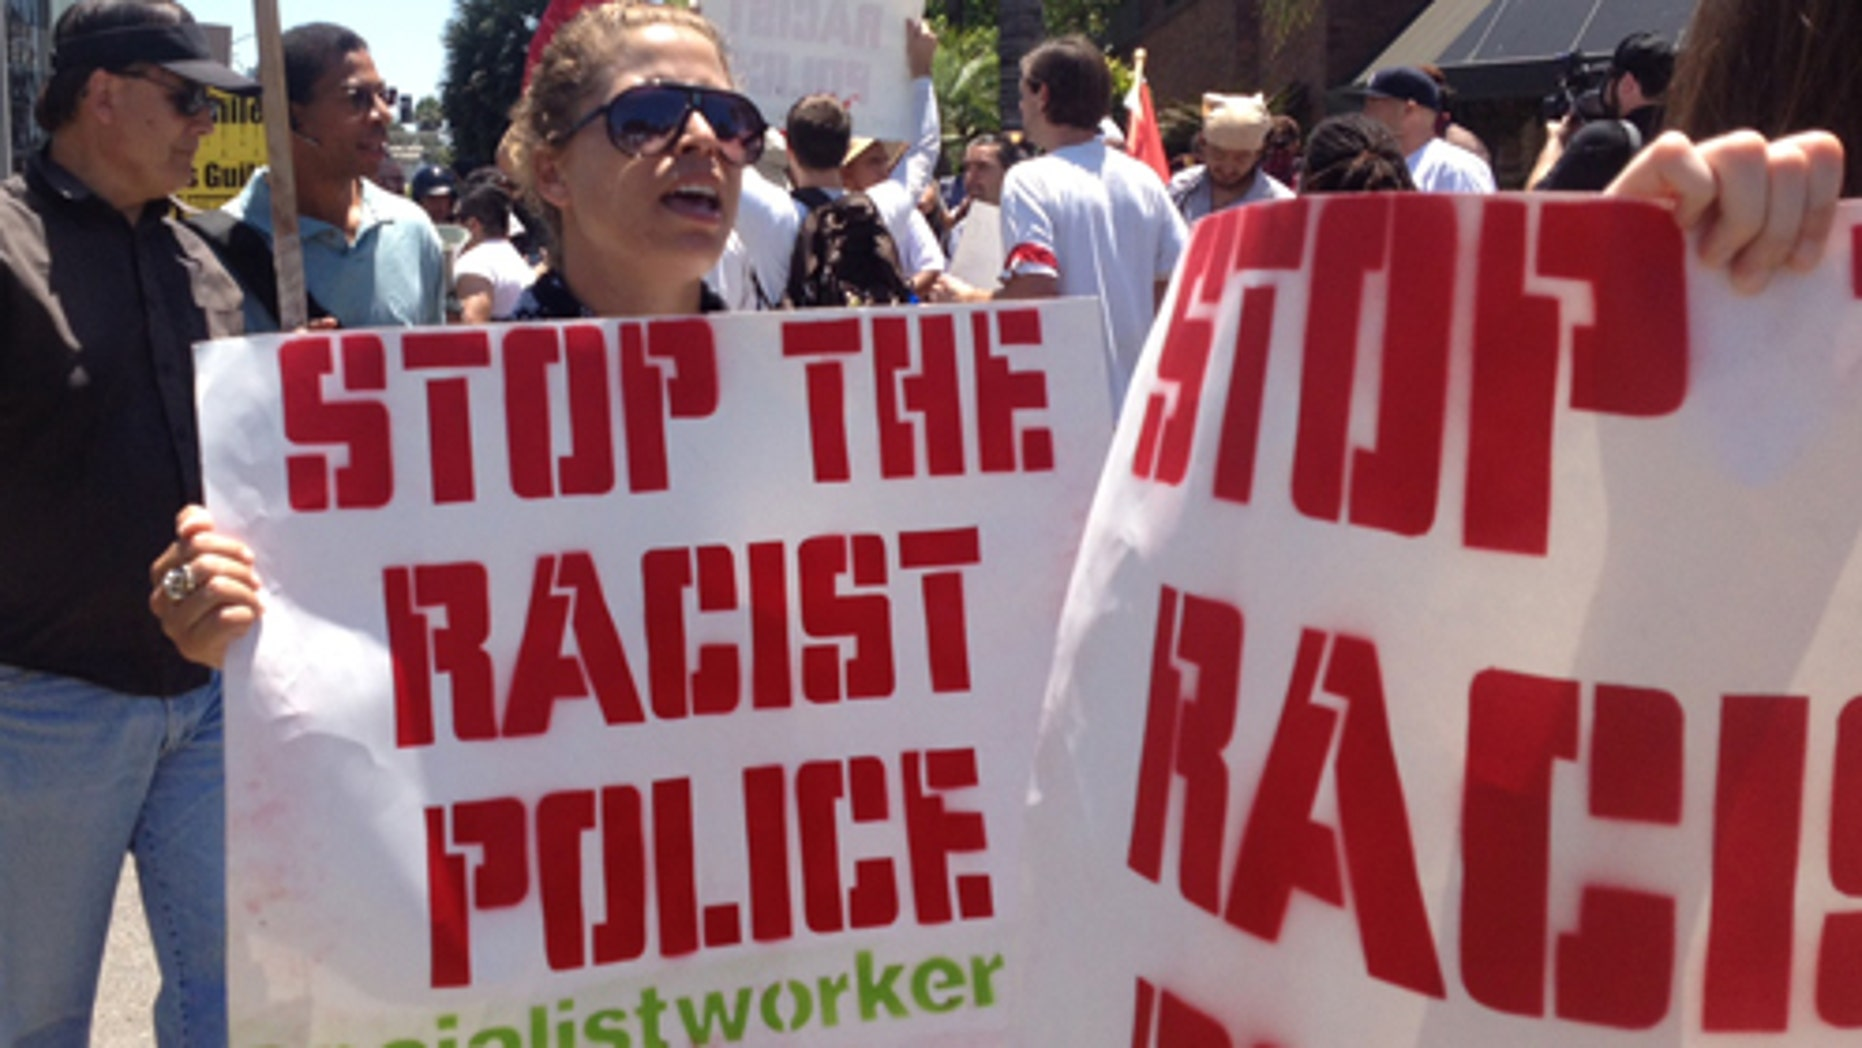 July 29: More than 300 demonstrators rallied Sunday to denounce two fatal police shootings and to issue a call for community peace. (AP Photo/The Orange County Register, Stuart Palley)